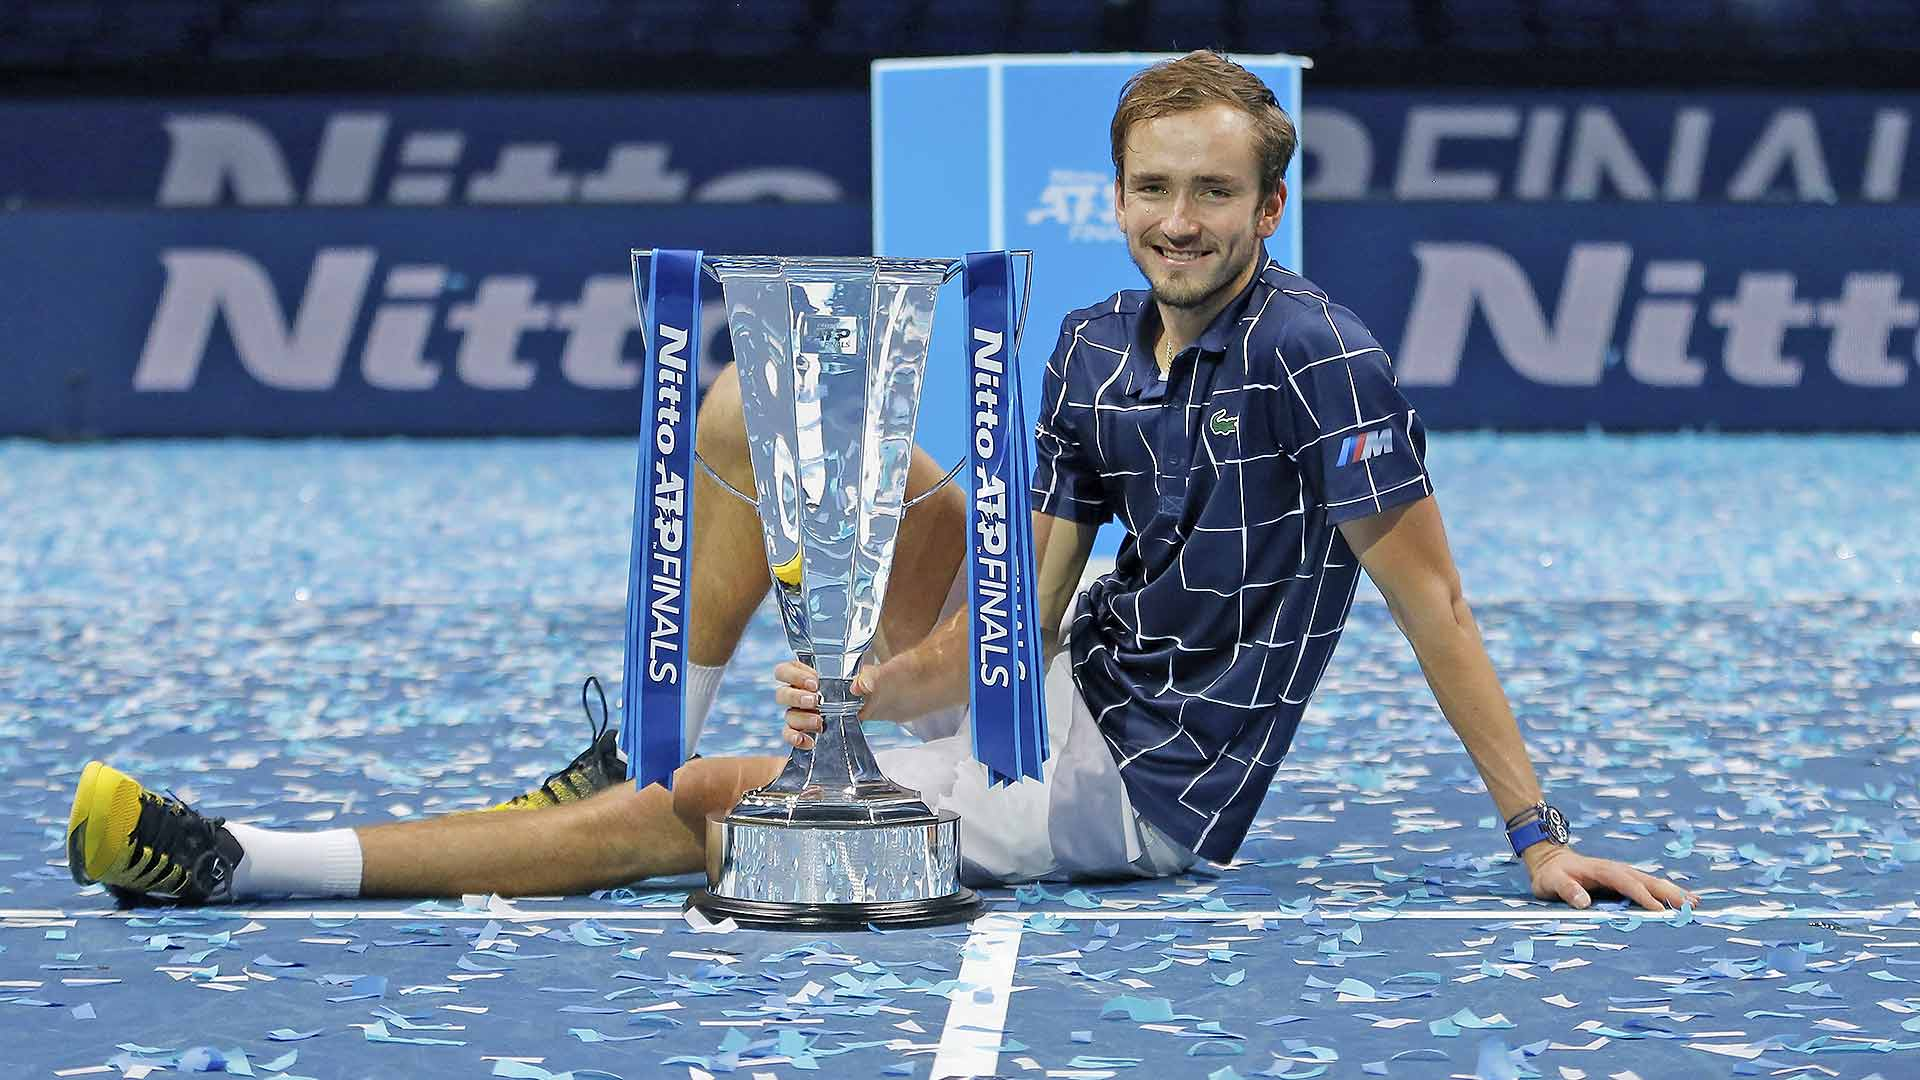 <a href='https://www.atptour.com/en/players/daniil-medvedev/mm58/overview'>Daniil Medvedev</a> is the undefeated 2020 <a href='https://www.atptour.com/en/tournaments/nitto-atp-finals/605/overview'>Nitto ATP Finals</a> champion.